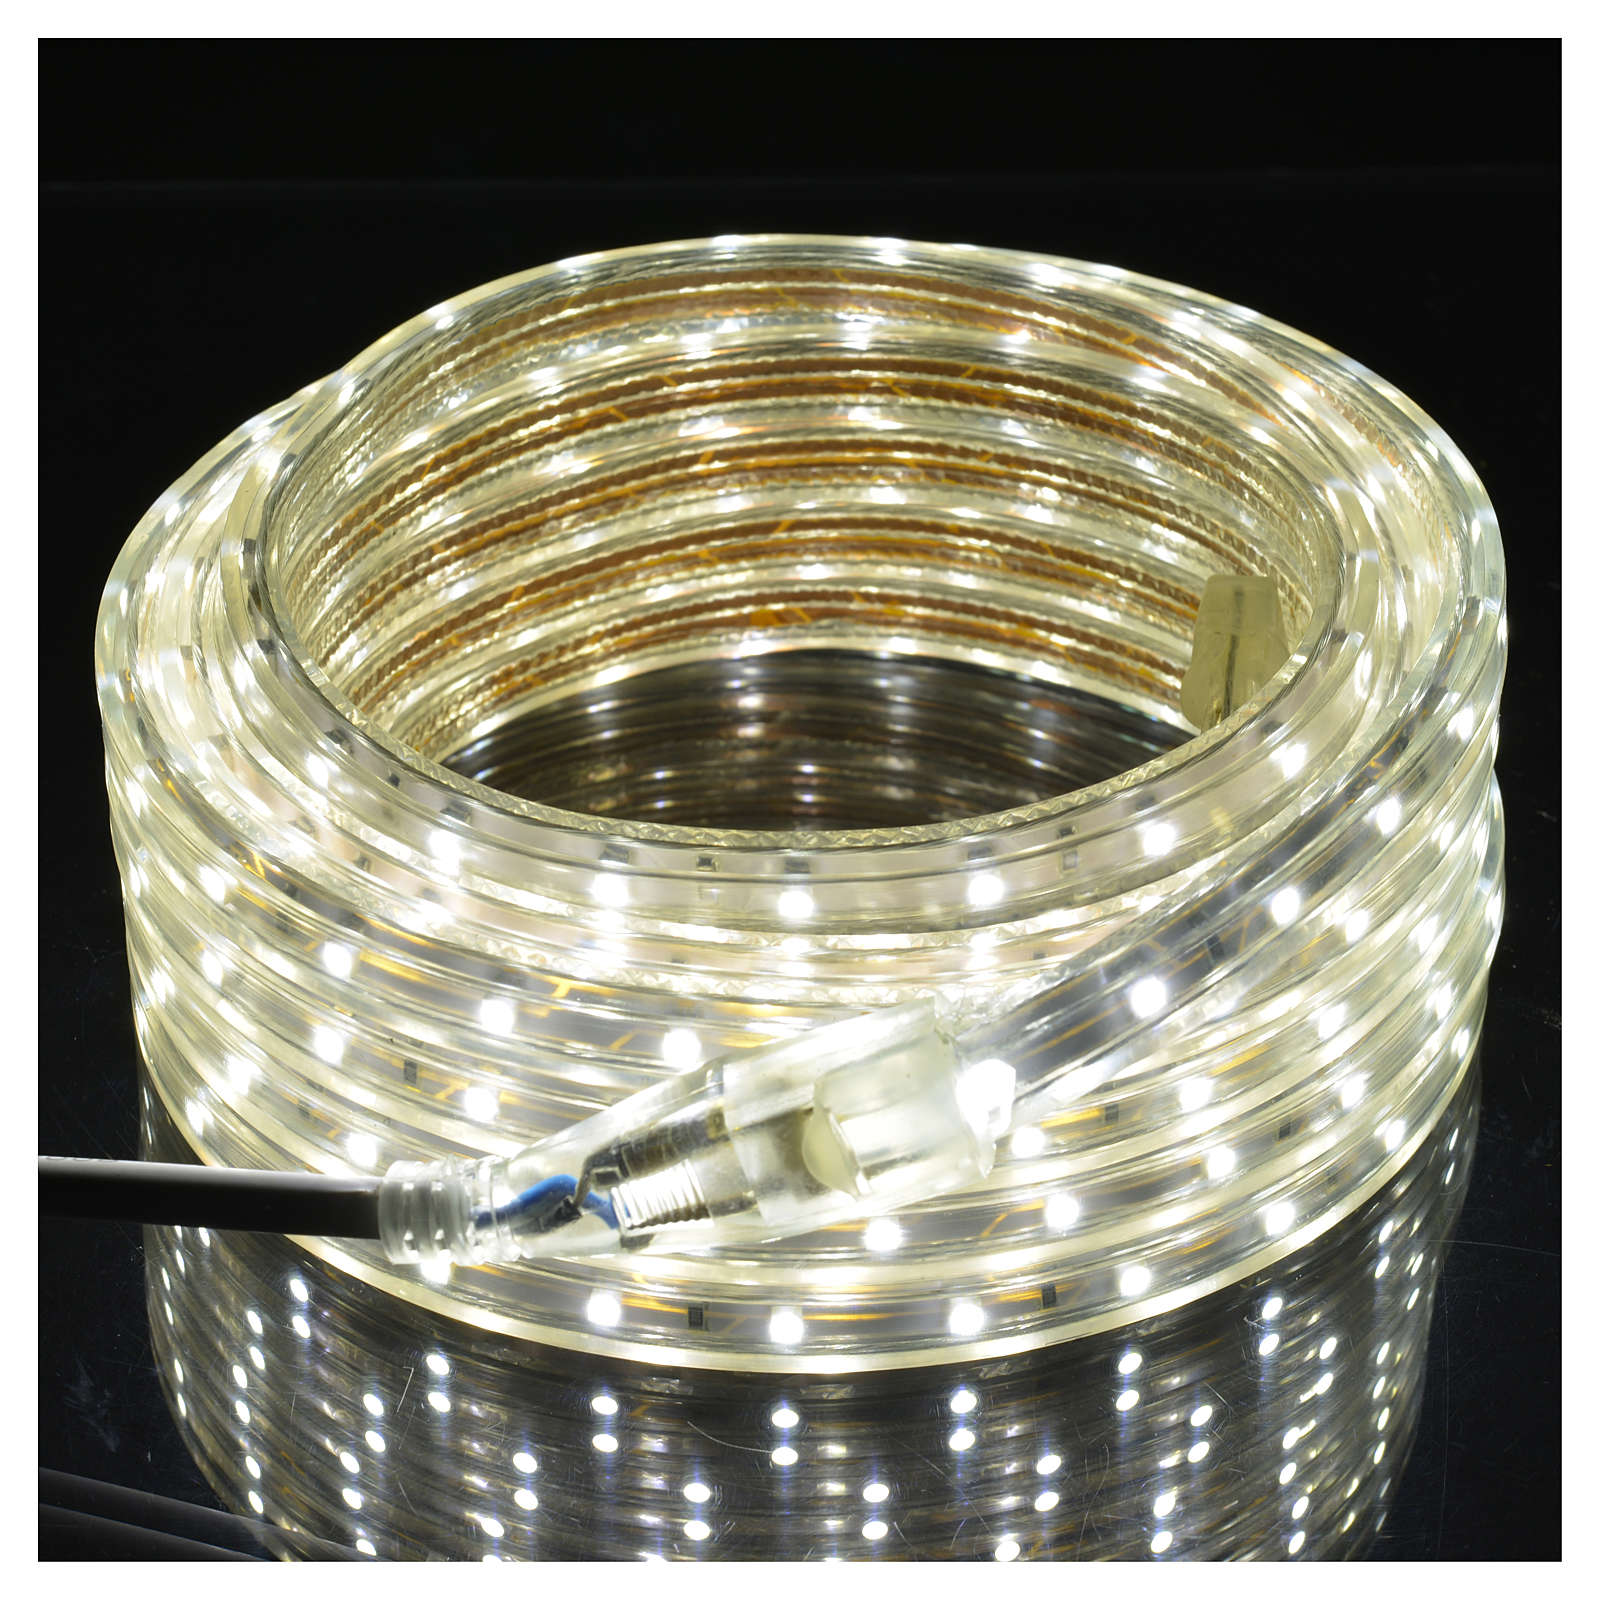 Fairy lights slim strip with 300 ice white LED for indoor/outdoor use 3